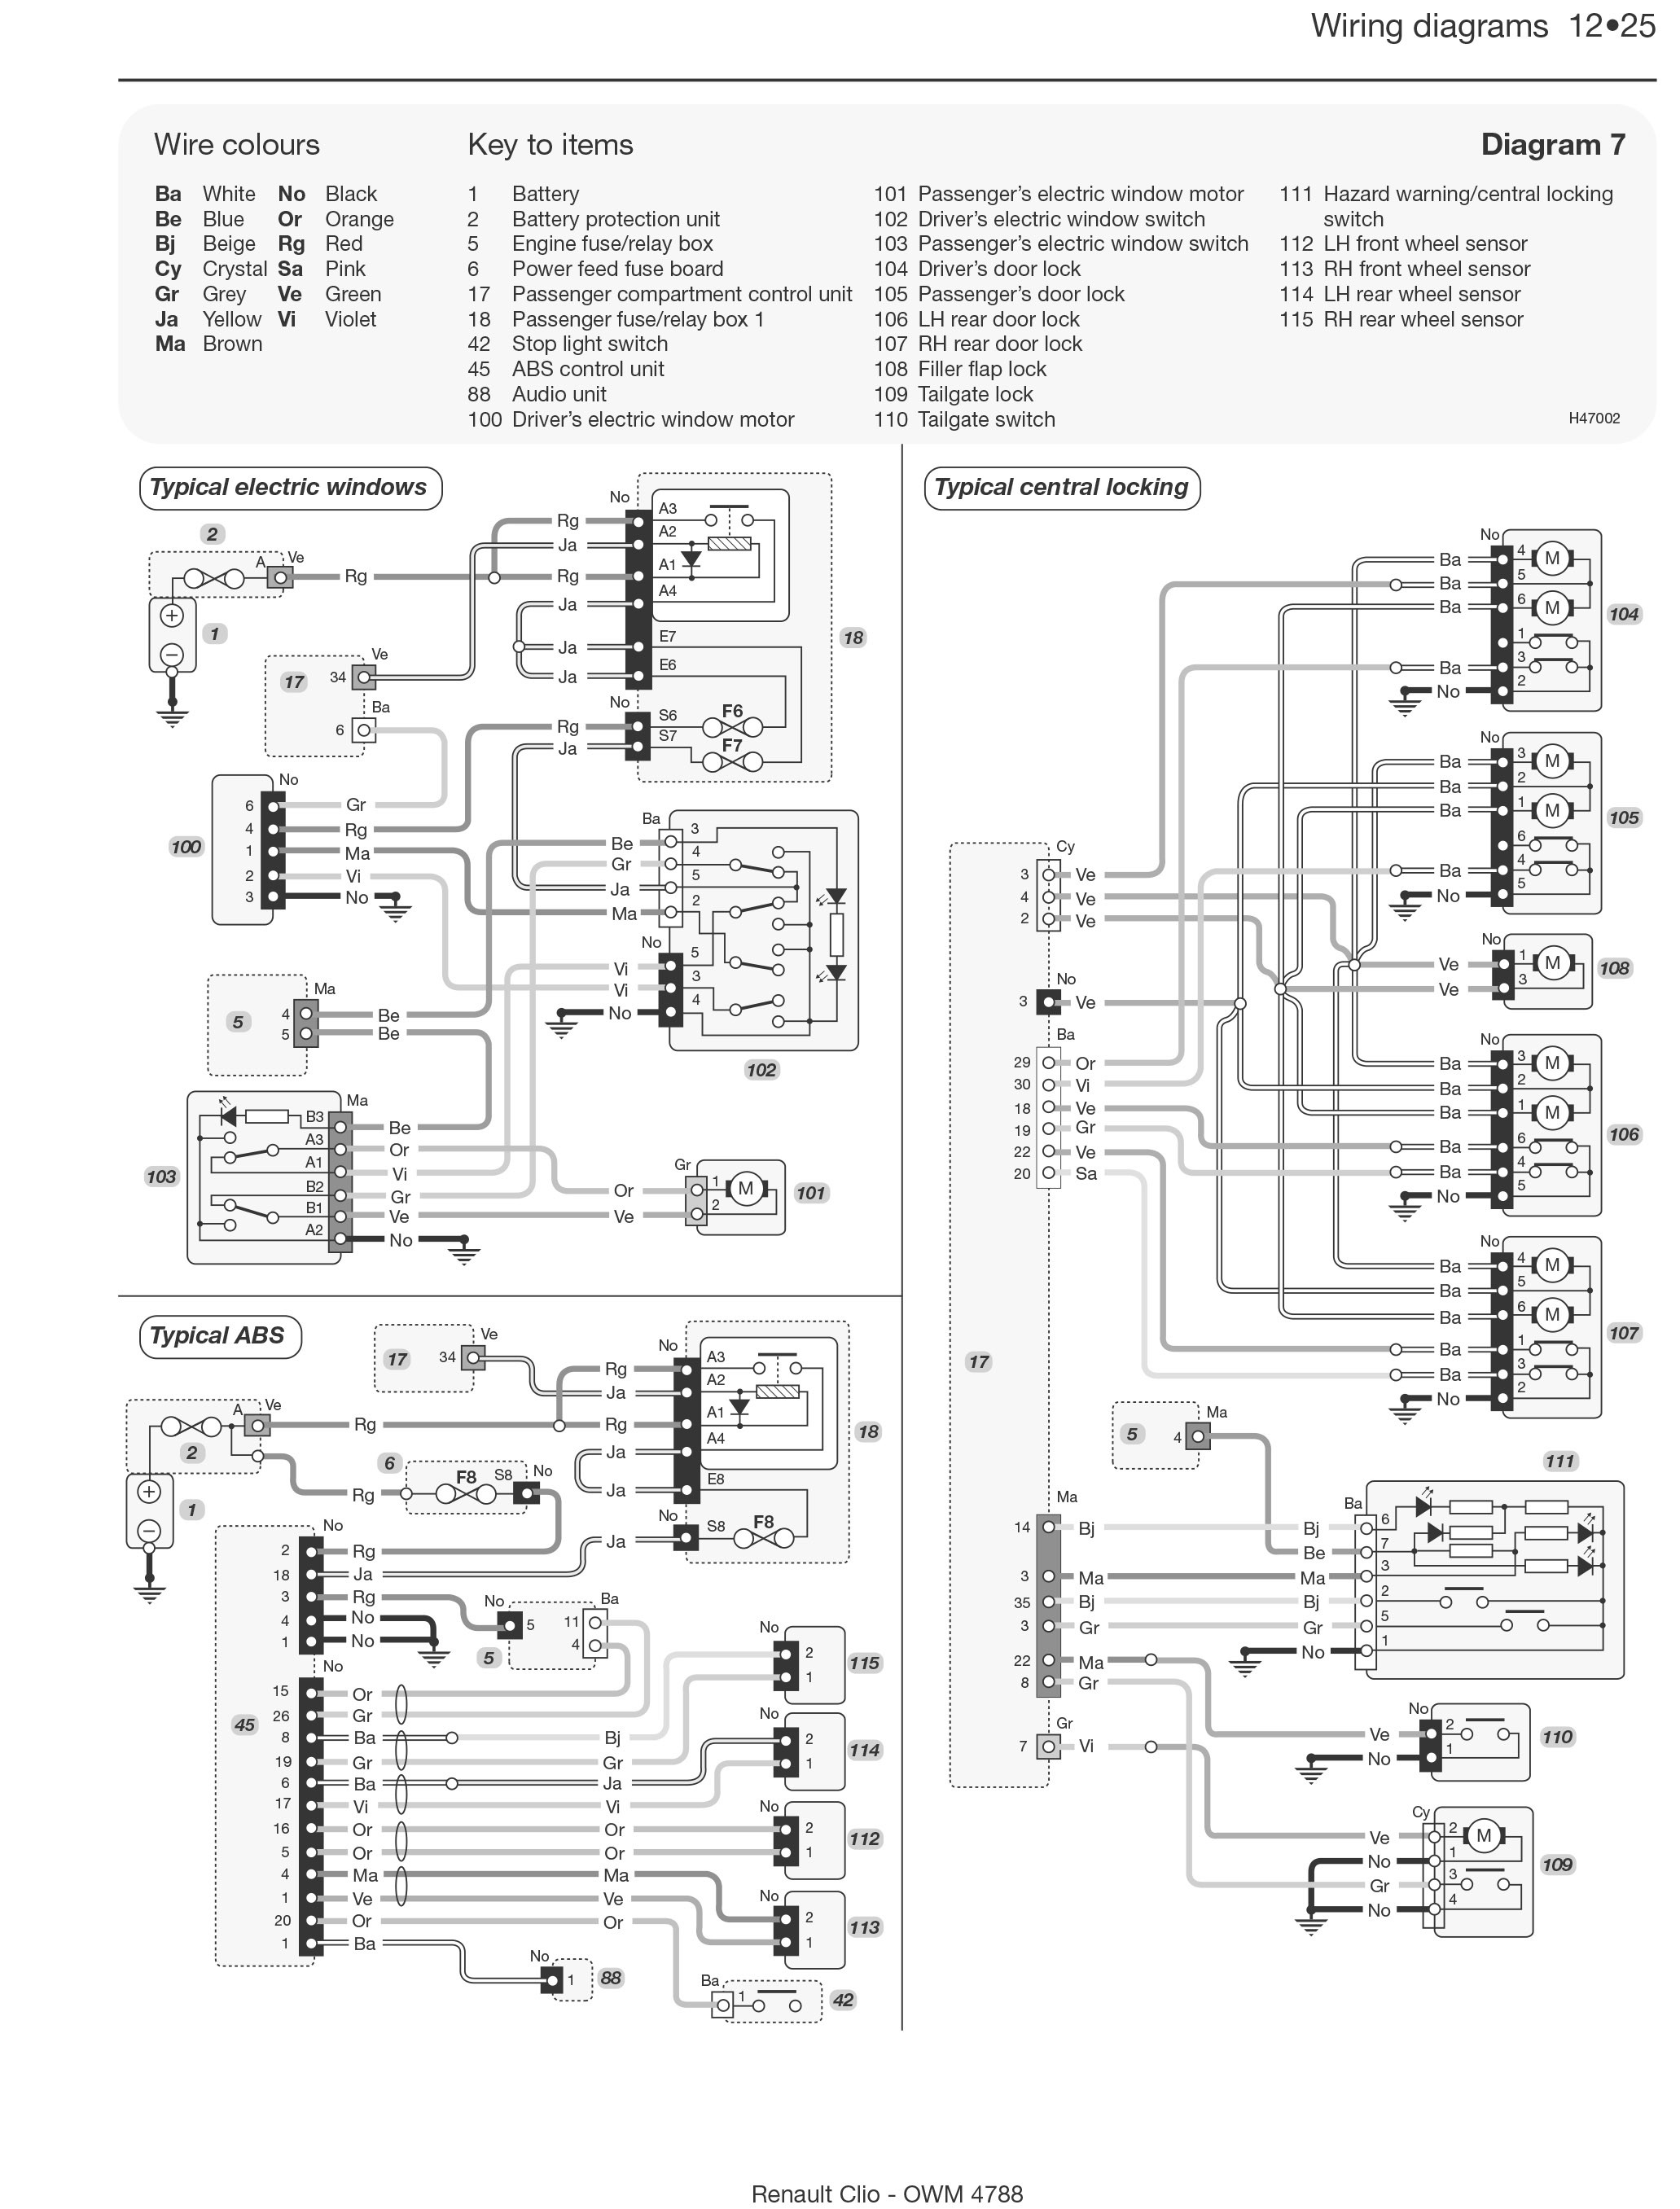 Renault clio wiring diagram and schematics